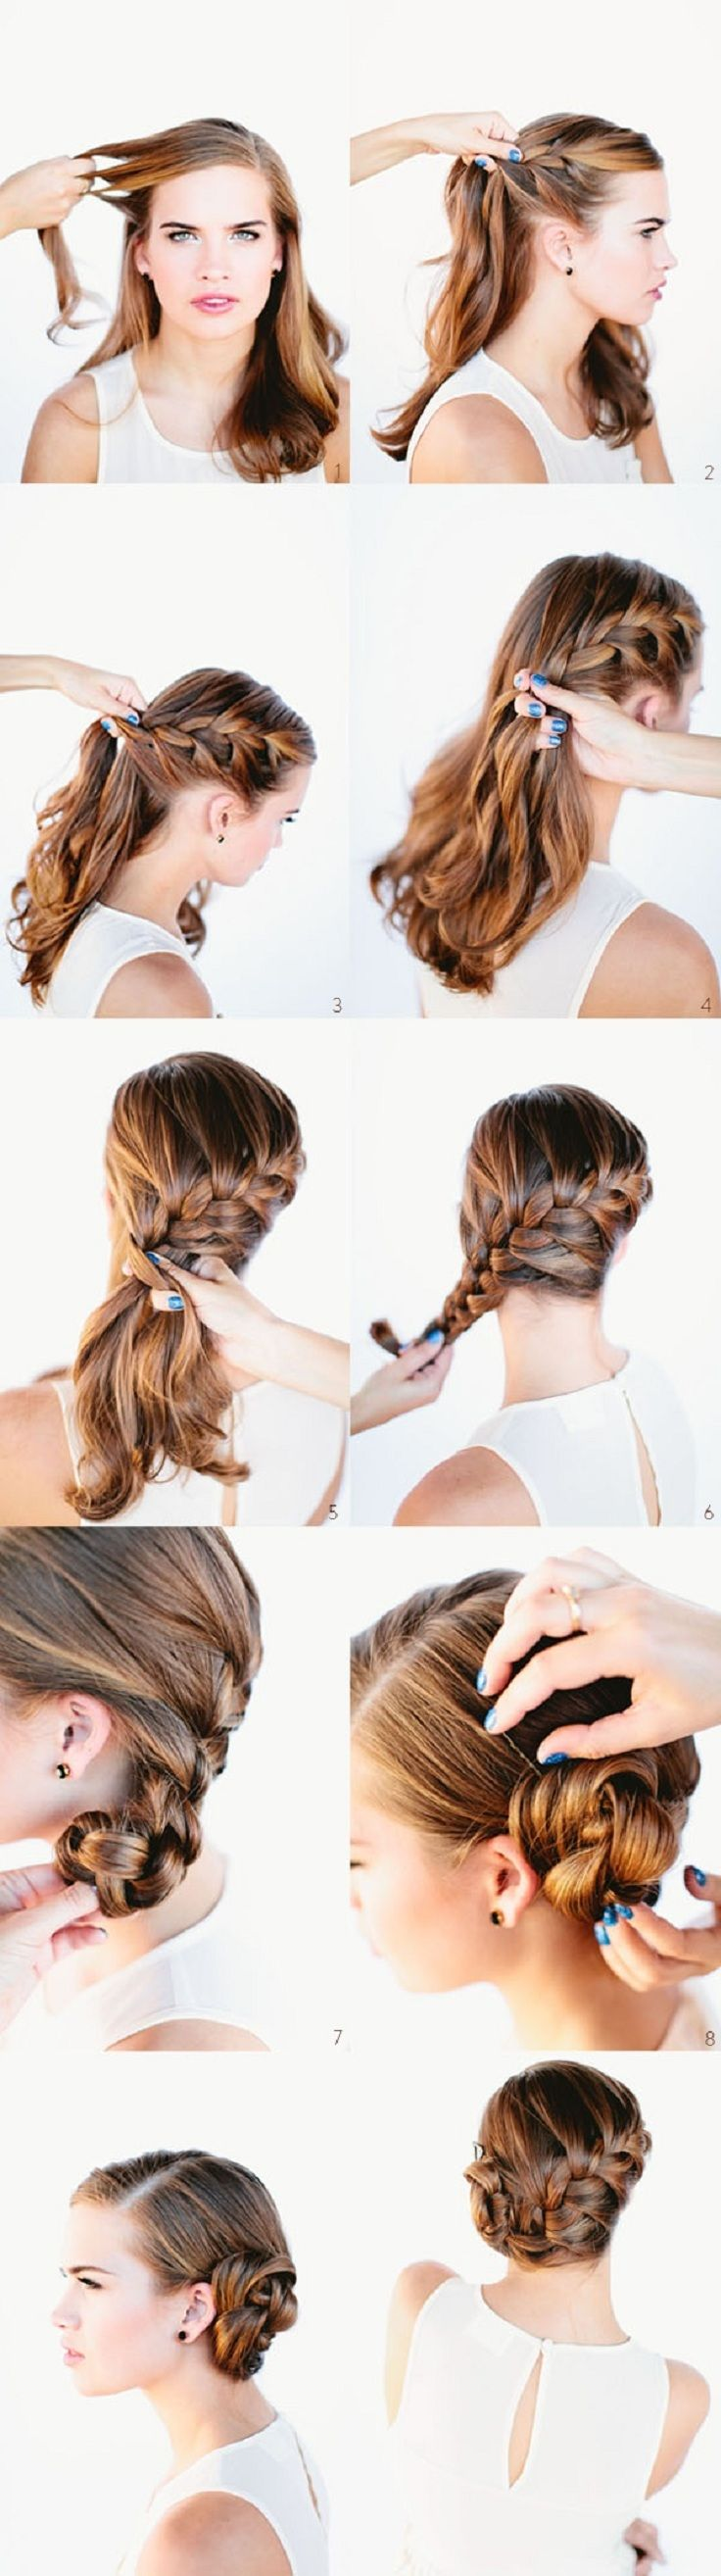 best images about hair on pinterest